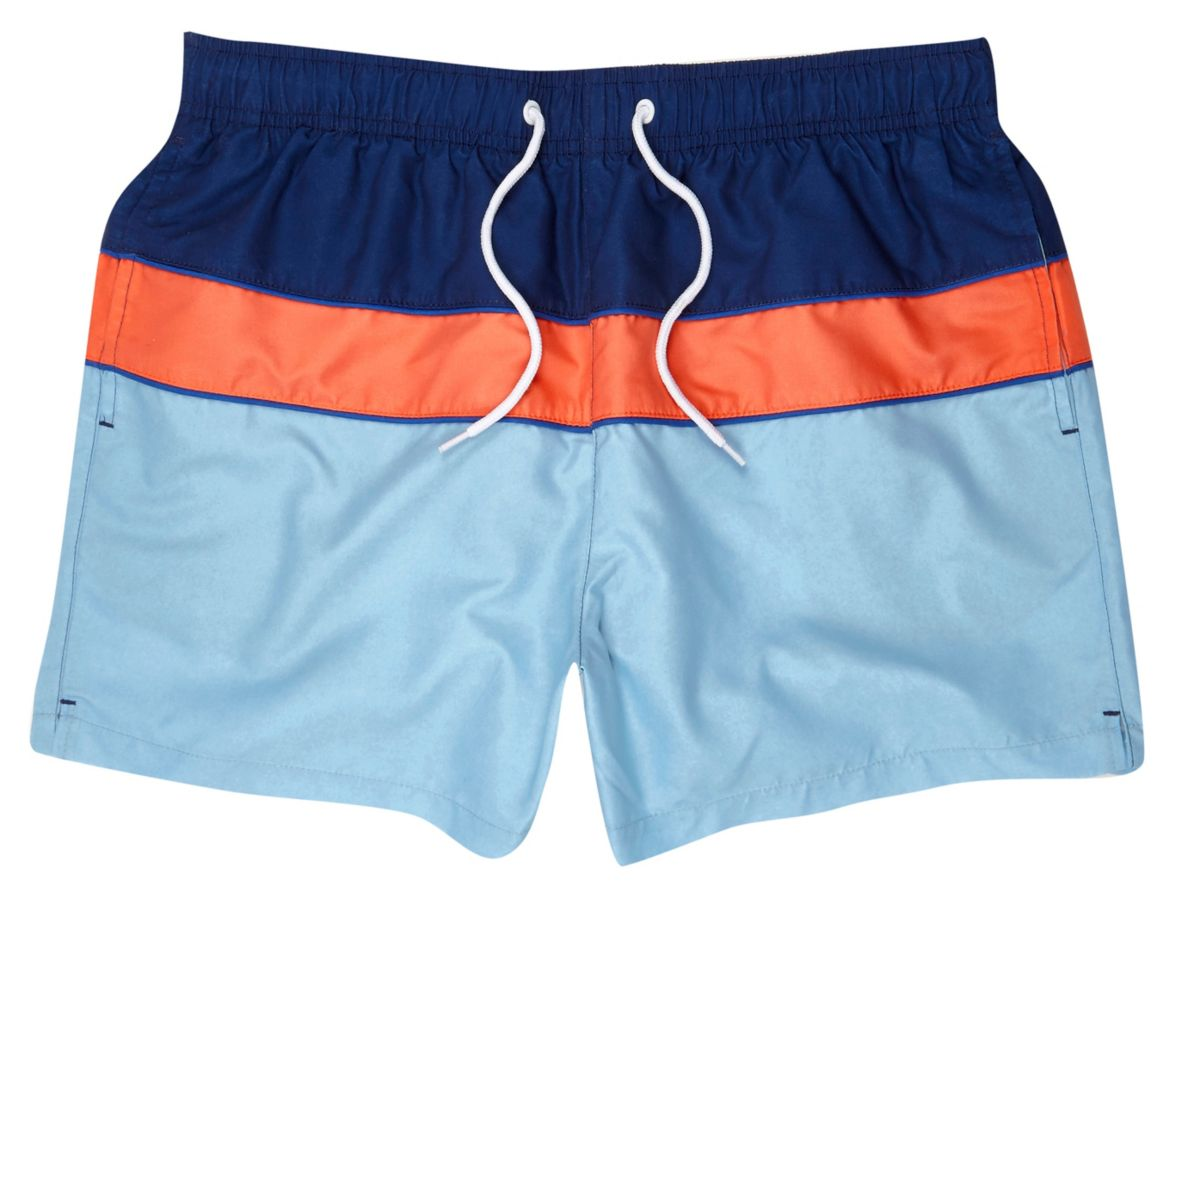 Orange block colour swim shorts